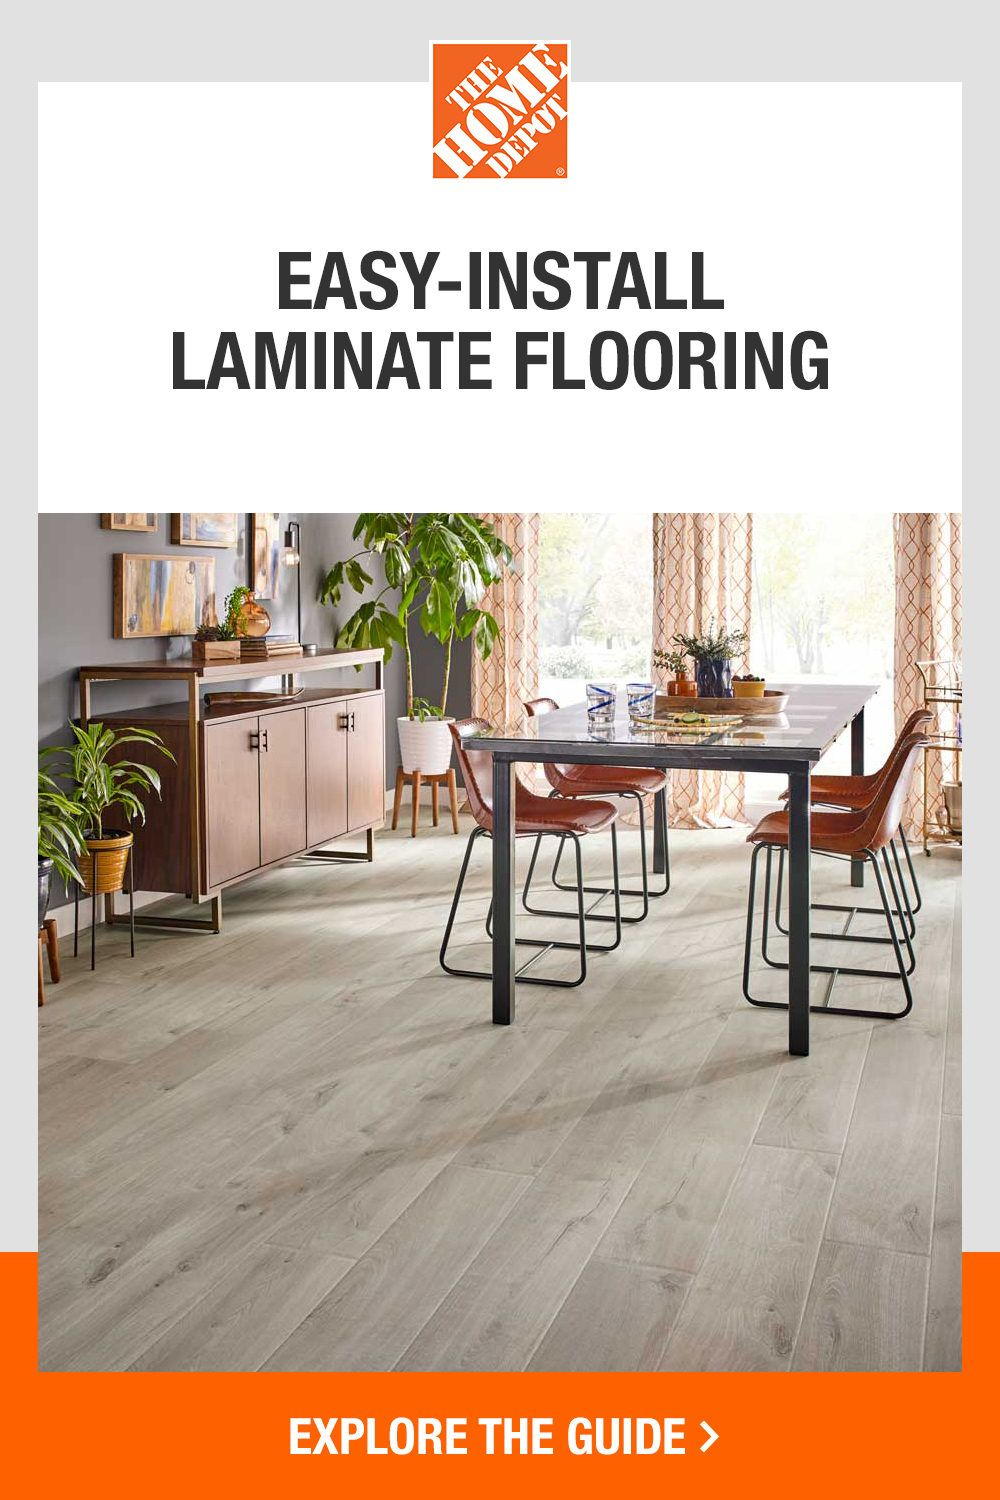 Upgrade your home with easy-to-install laminate flooring from The Home Depot. Laminate flooringis an ideal project for DIYers and can easily lay in every room of your home. Because this flooring option requires very little tools, installation is a quick and efficient process. Tap here for the full how-to install guide from The Home Depot.